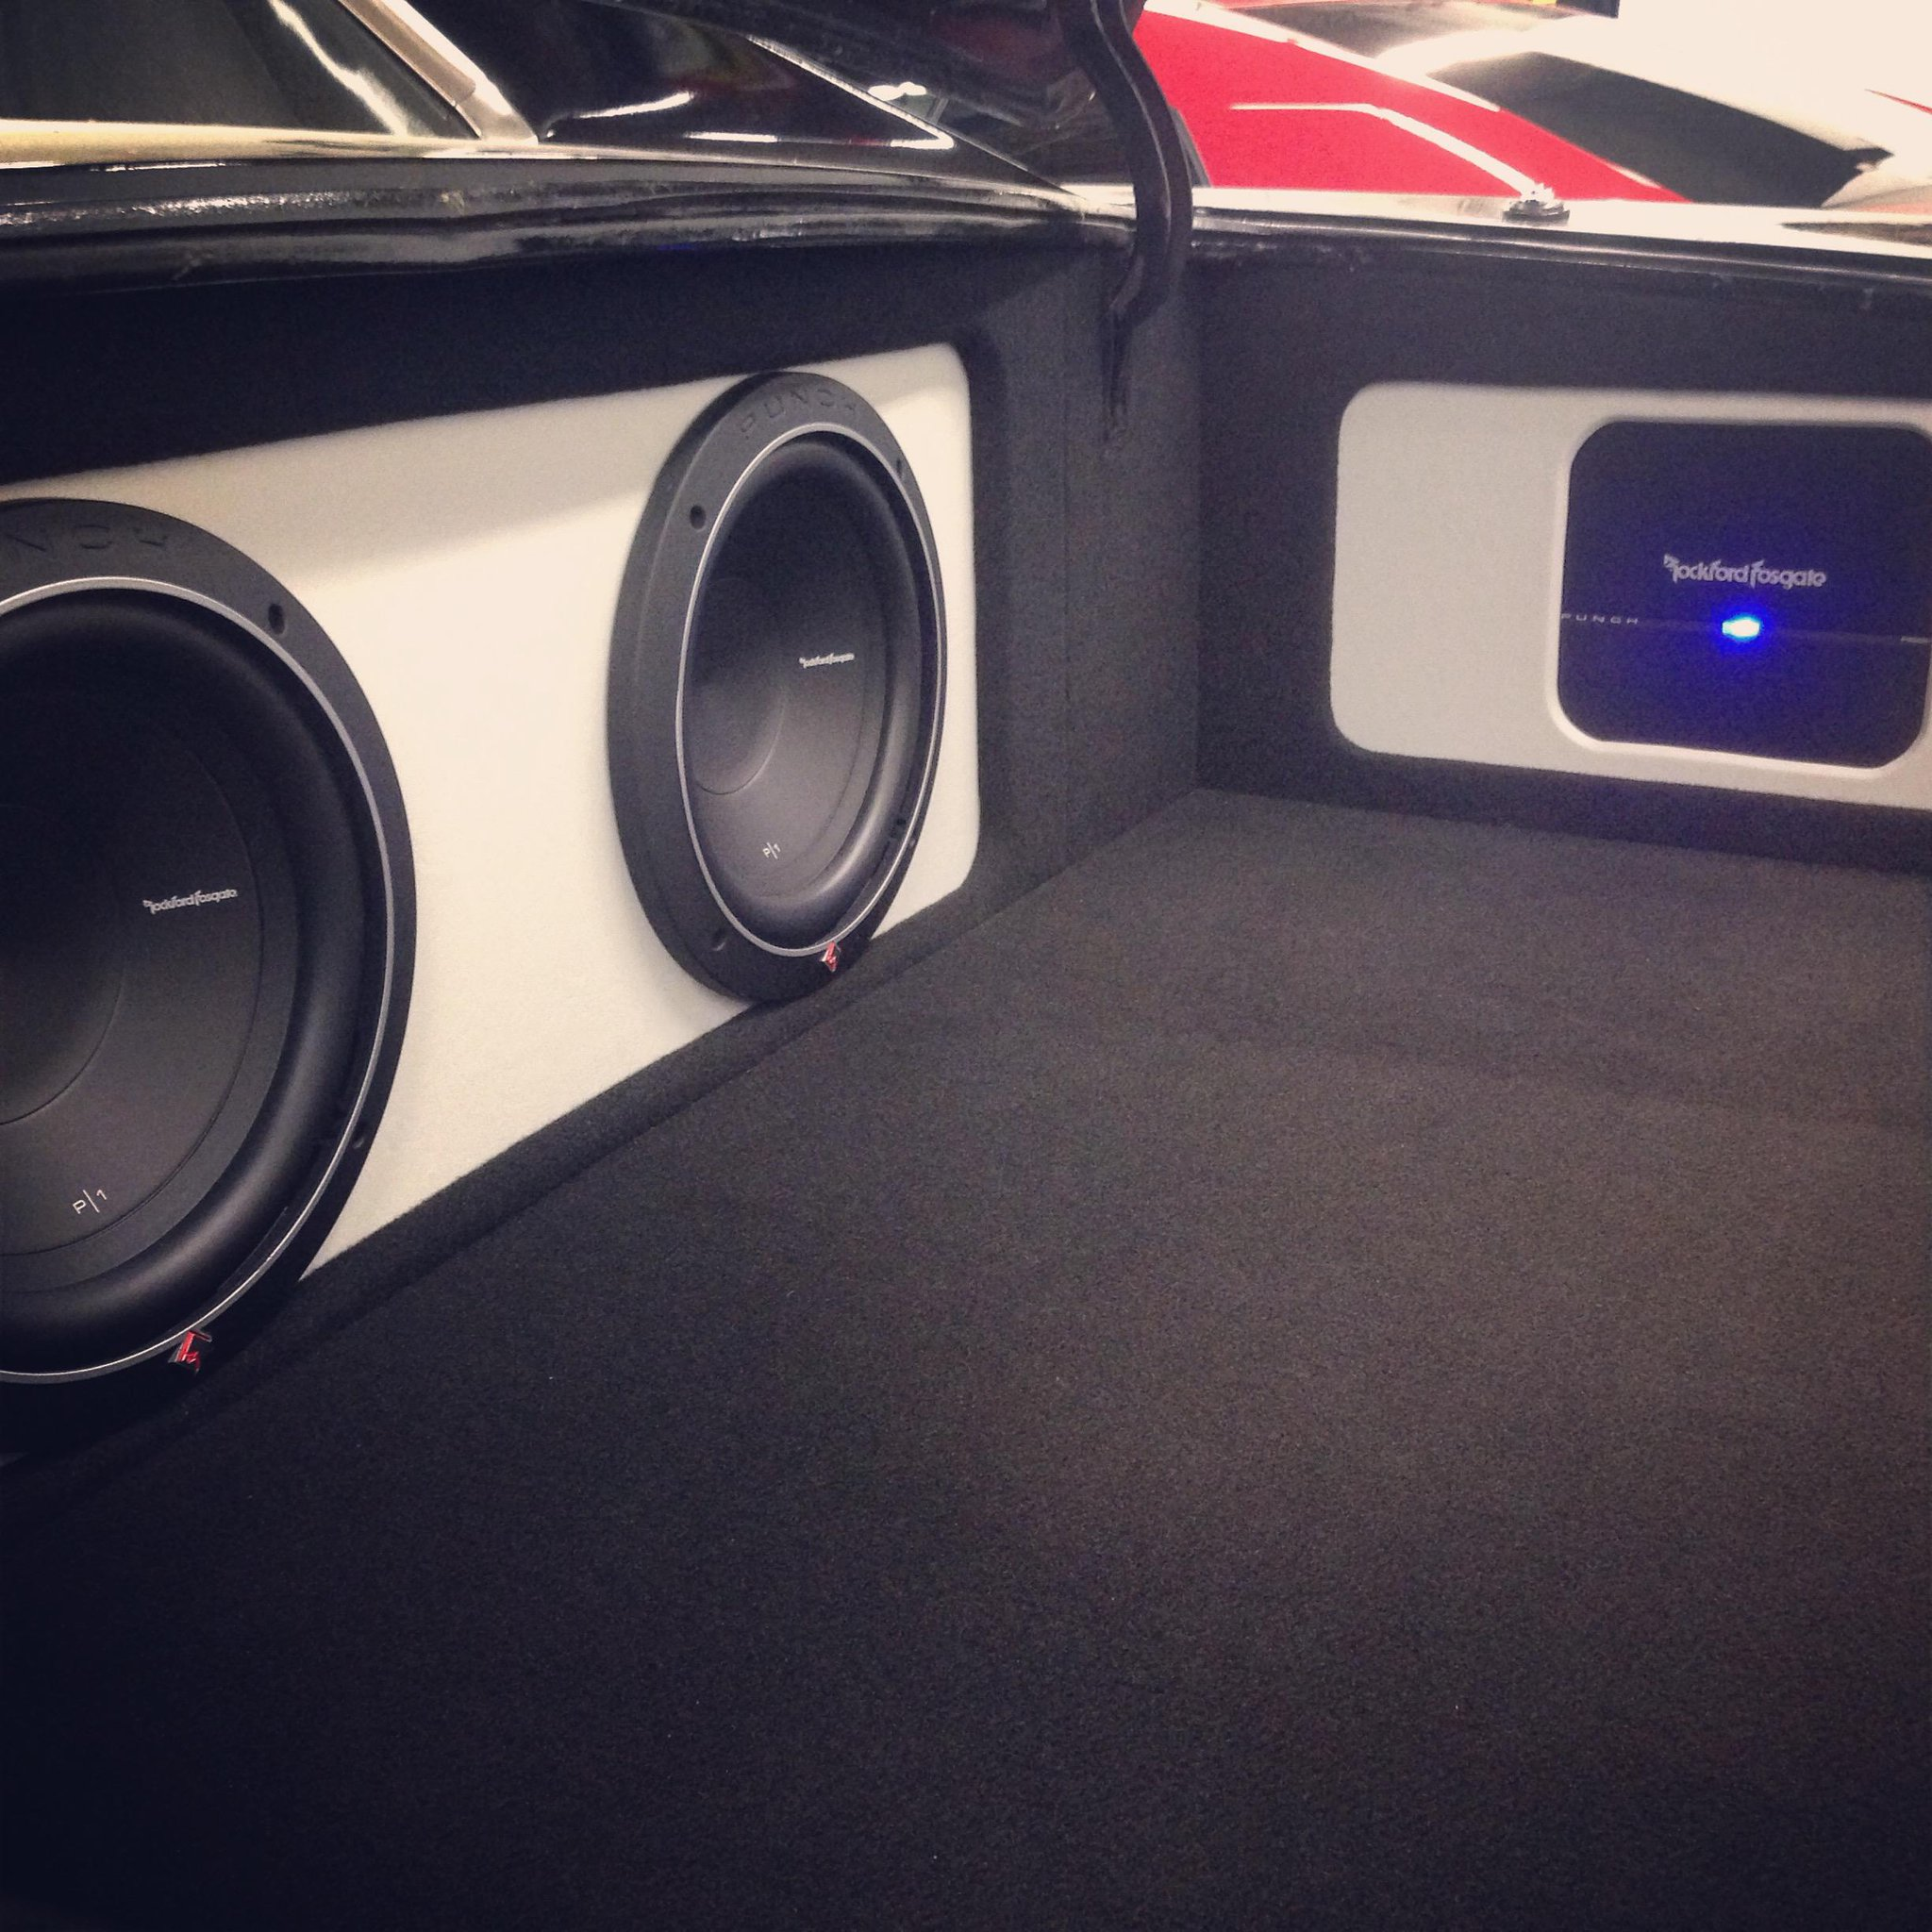 Code Zero Customs On Twitter Rockfordfosgate Trunk In The Gto P1 10 S Powered By A P500x1 P1 Components And Coaxials Up Front With P400x4 Http T Co K8lwci3smg